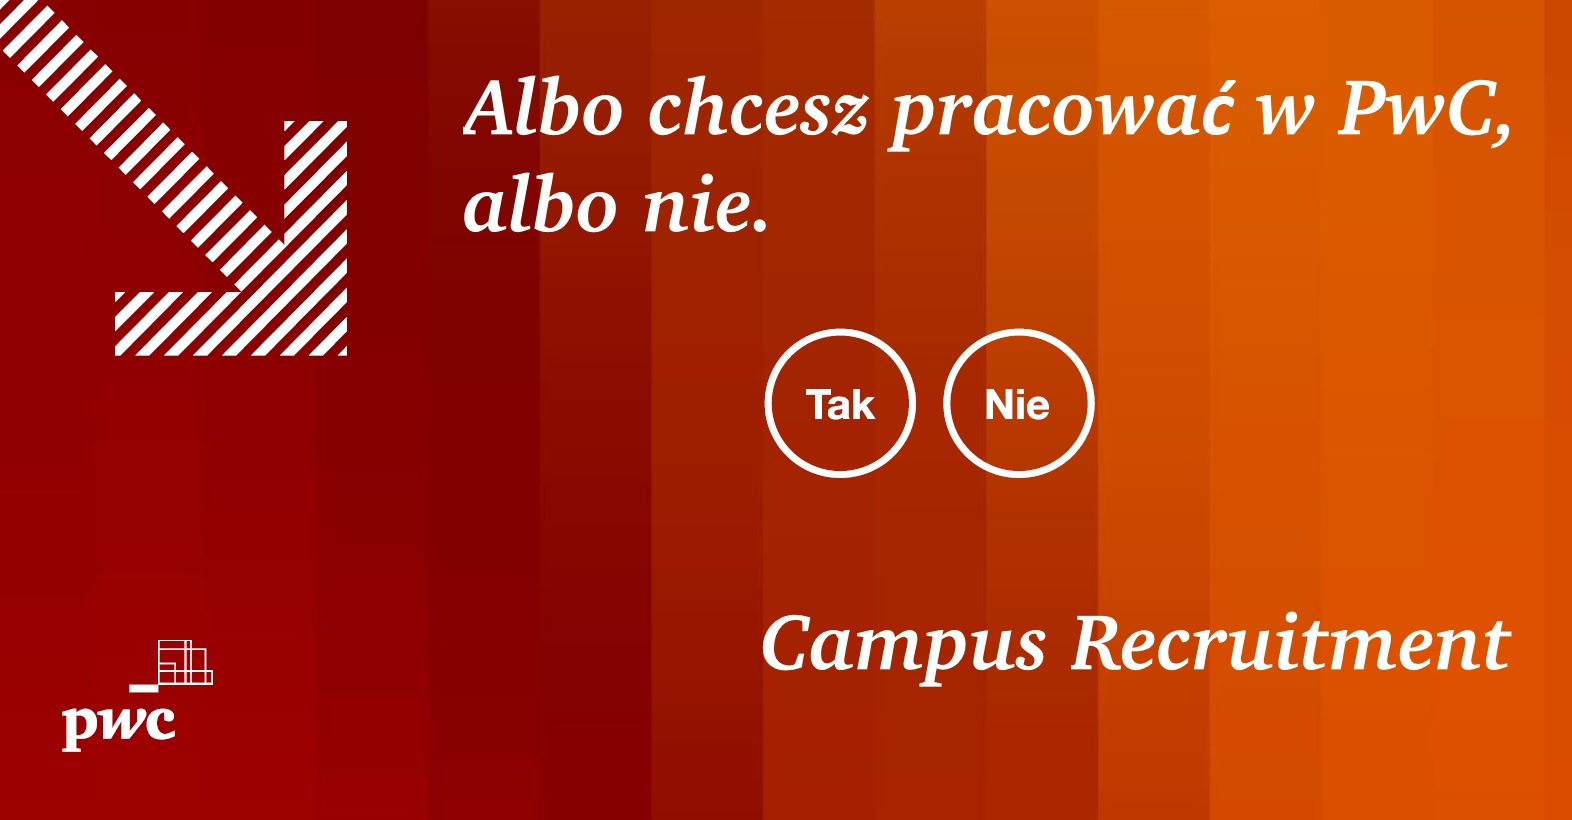 Campus Recruitment z PwC